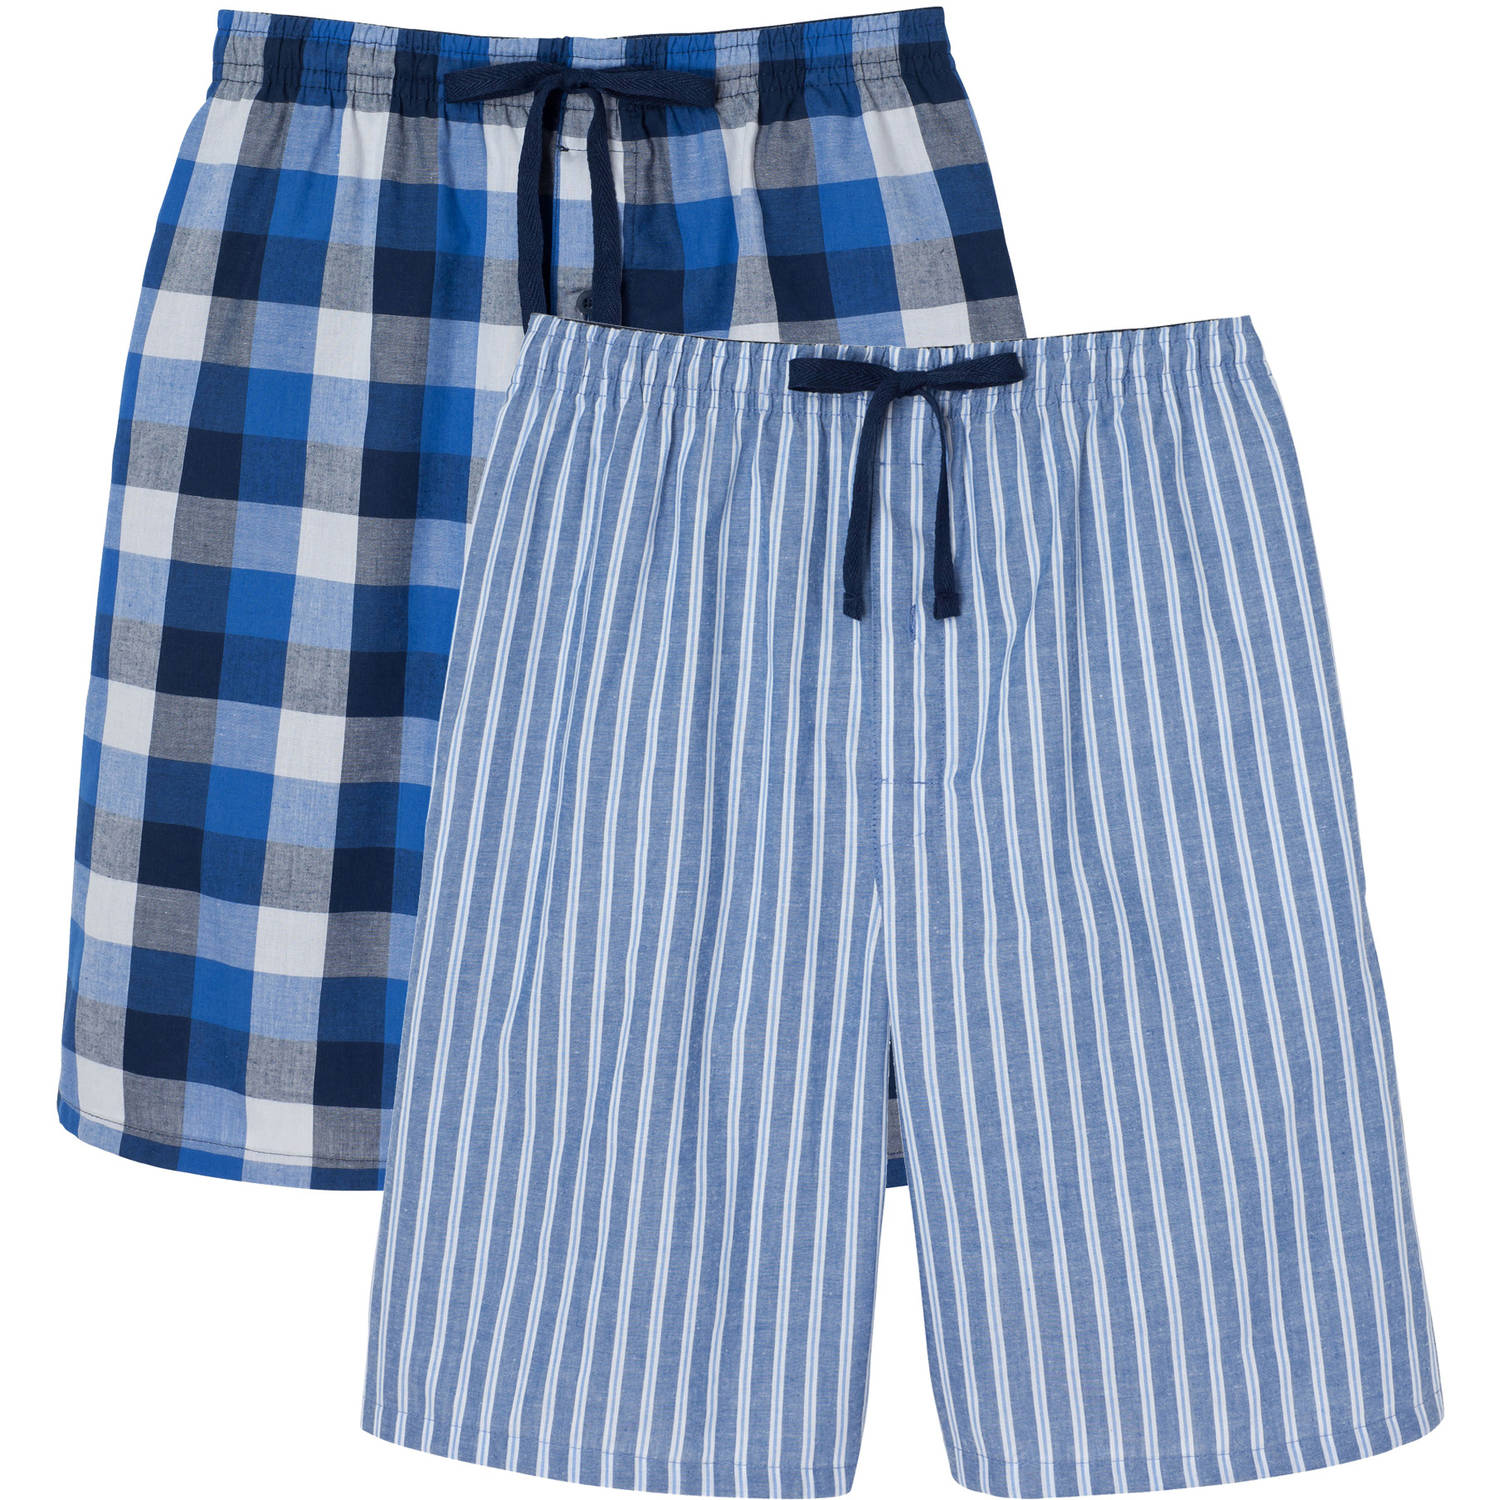 Hanes Big Men's 2-Pack Woven Sleep Jam Short